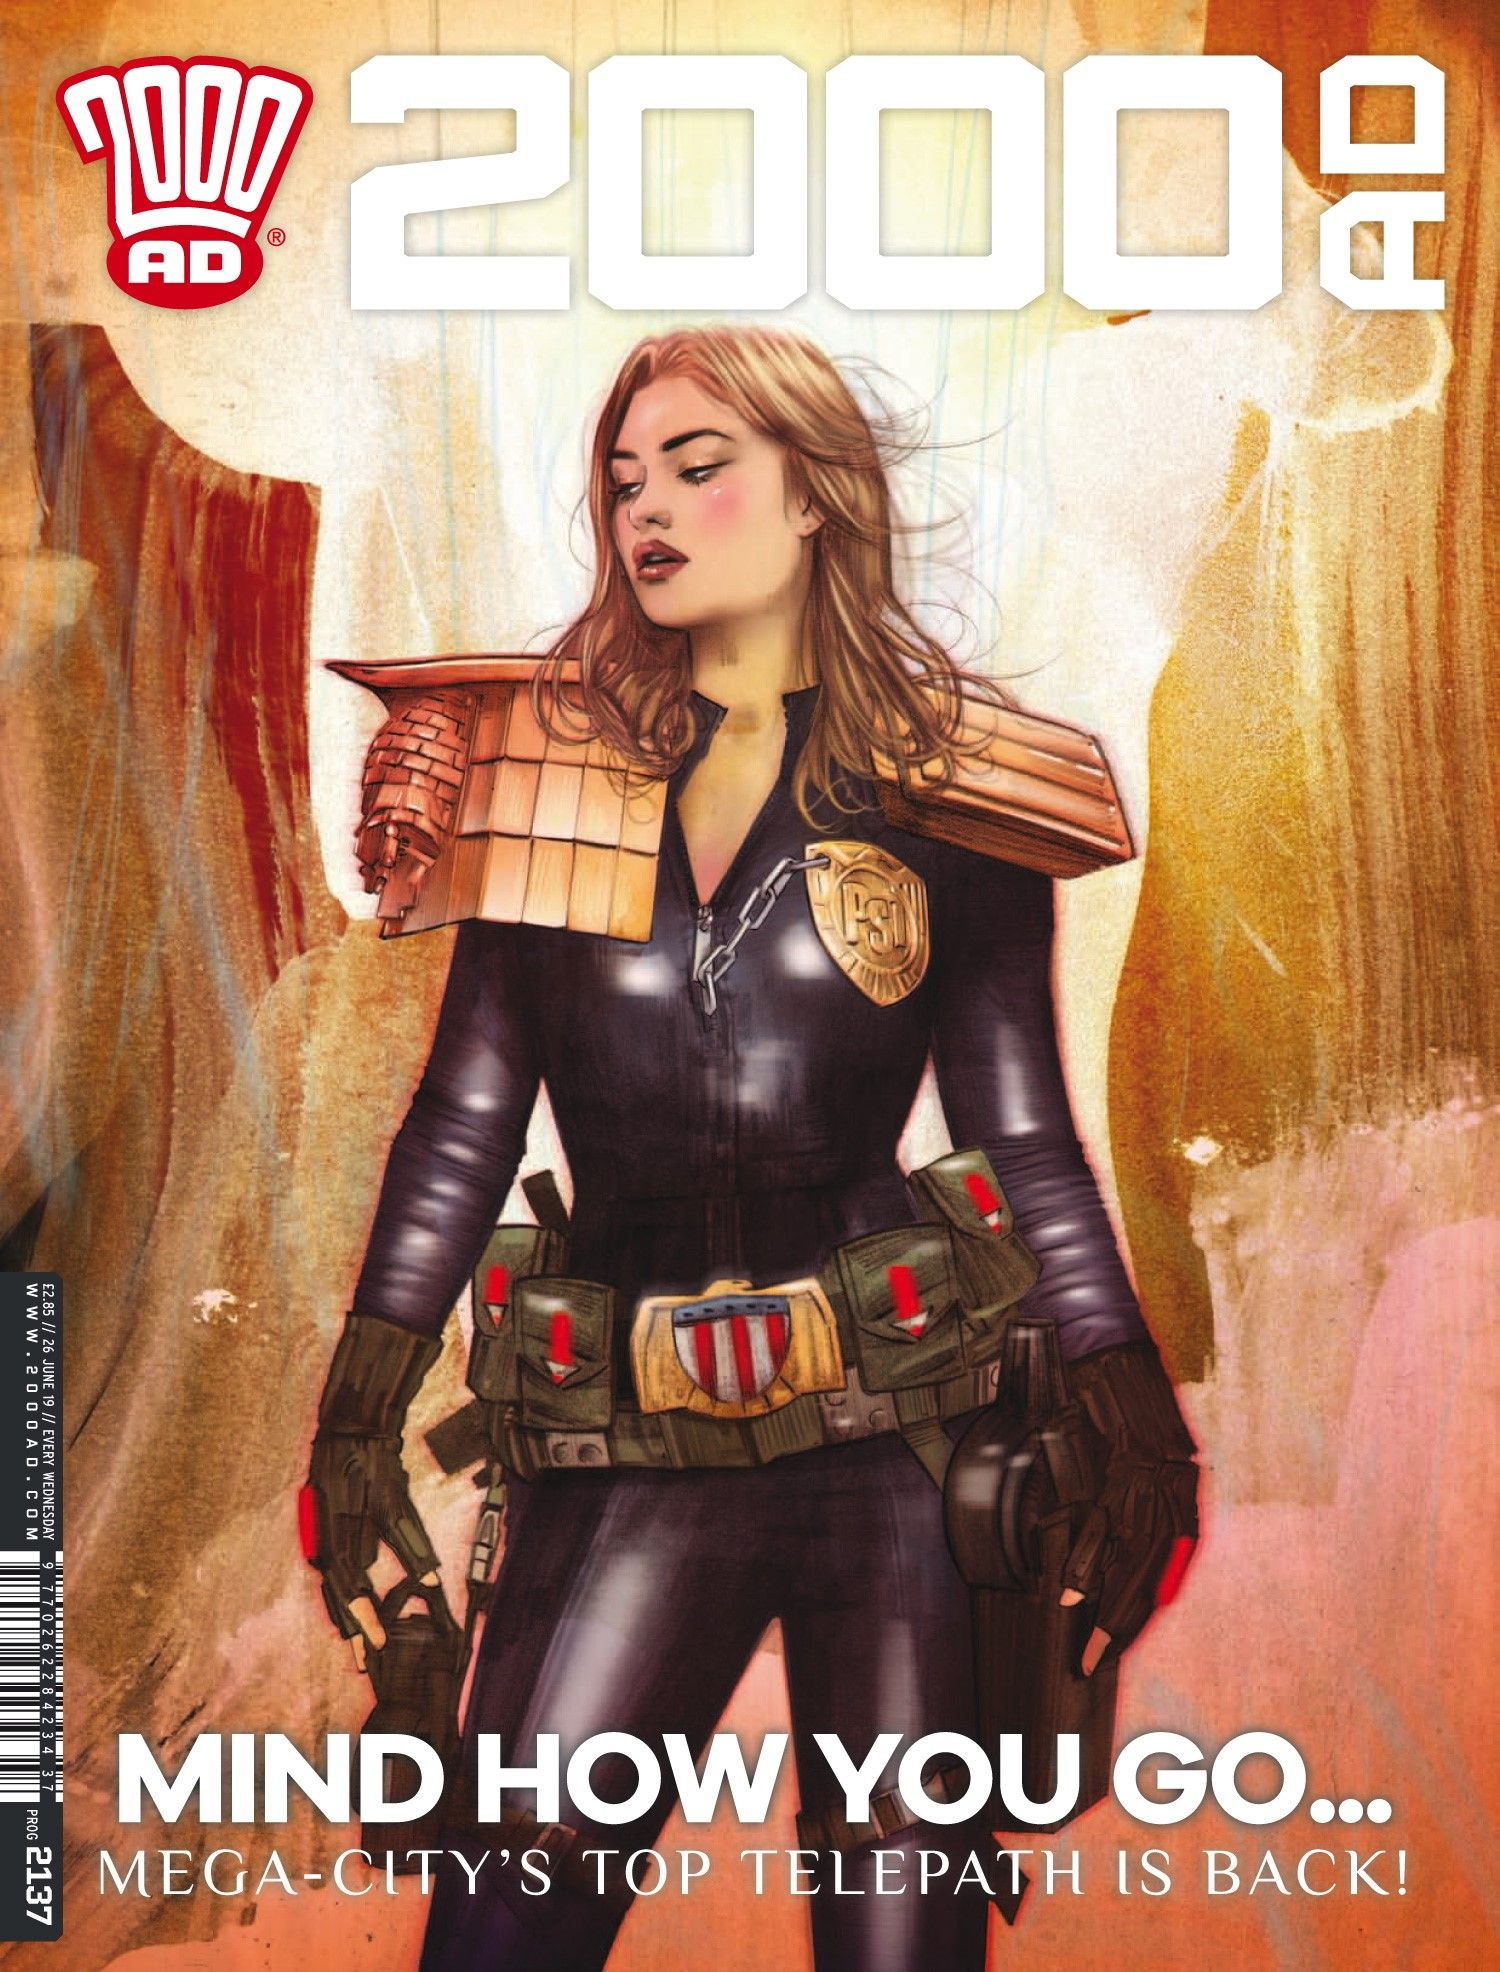 2000-ad-cover.jpg